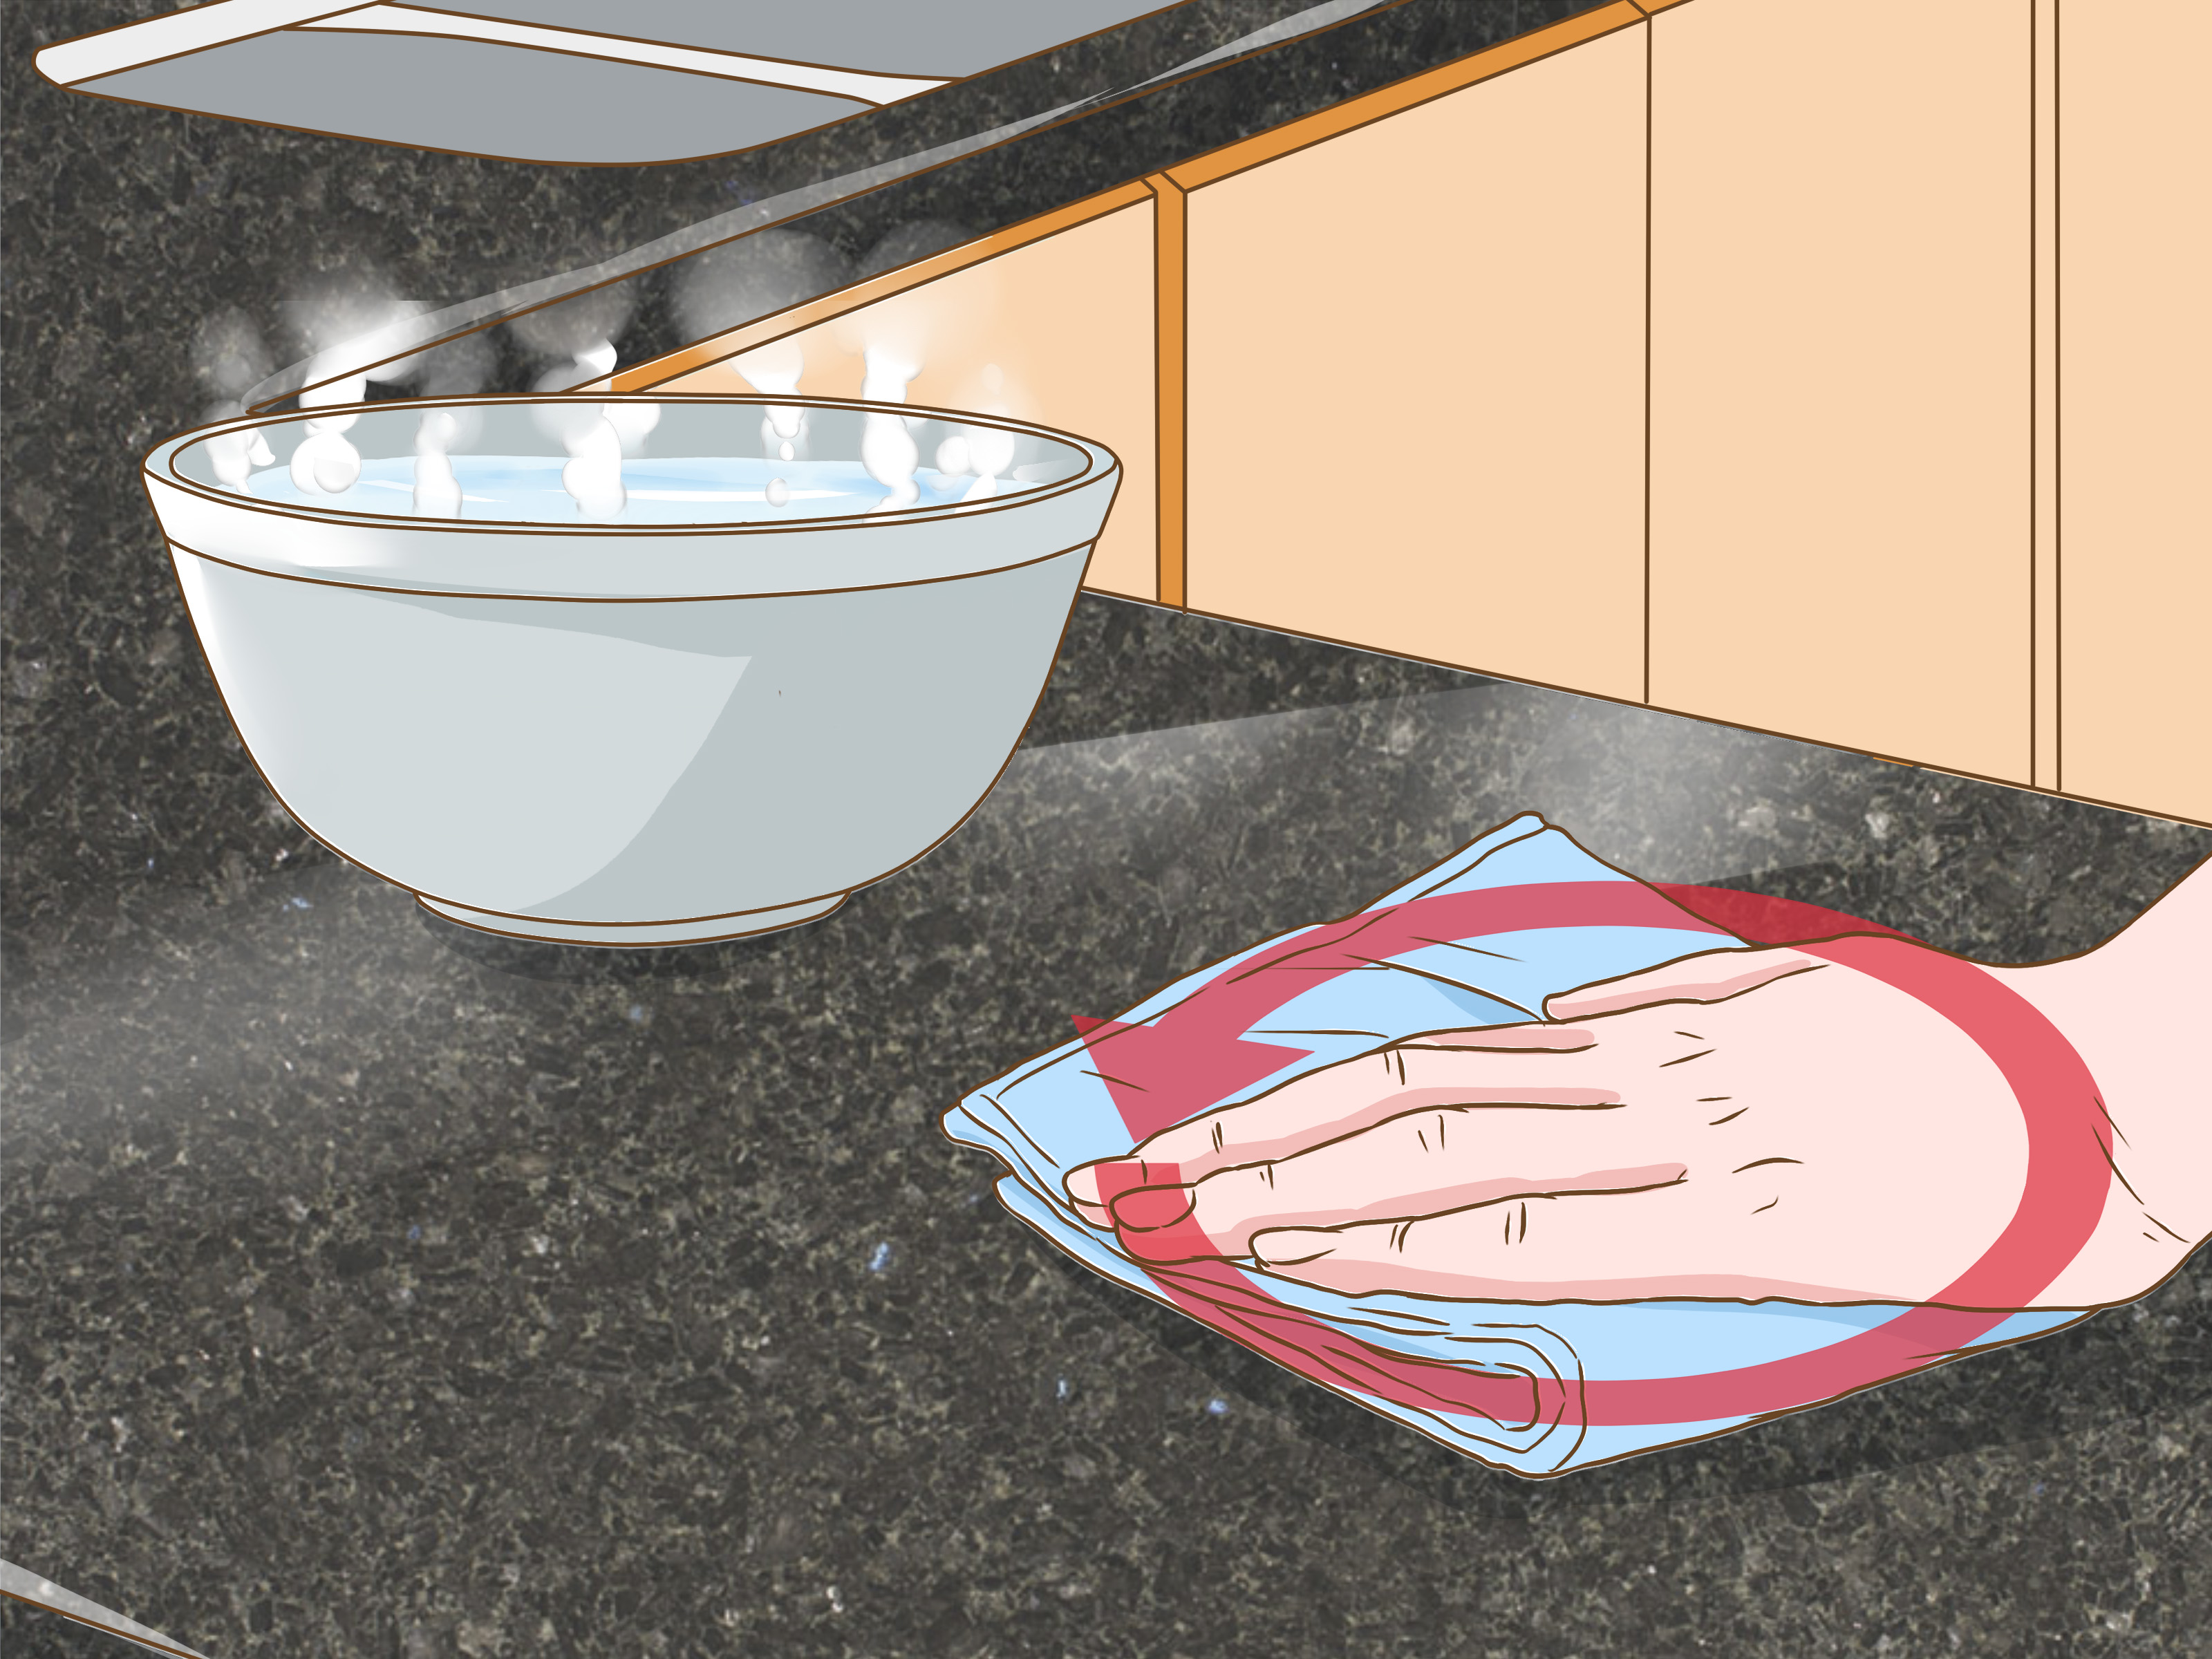 Quartz Countertops Cleaning 4 Ways To Clean Quartz Countertops Wikihow